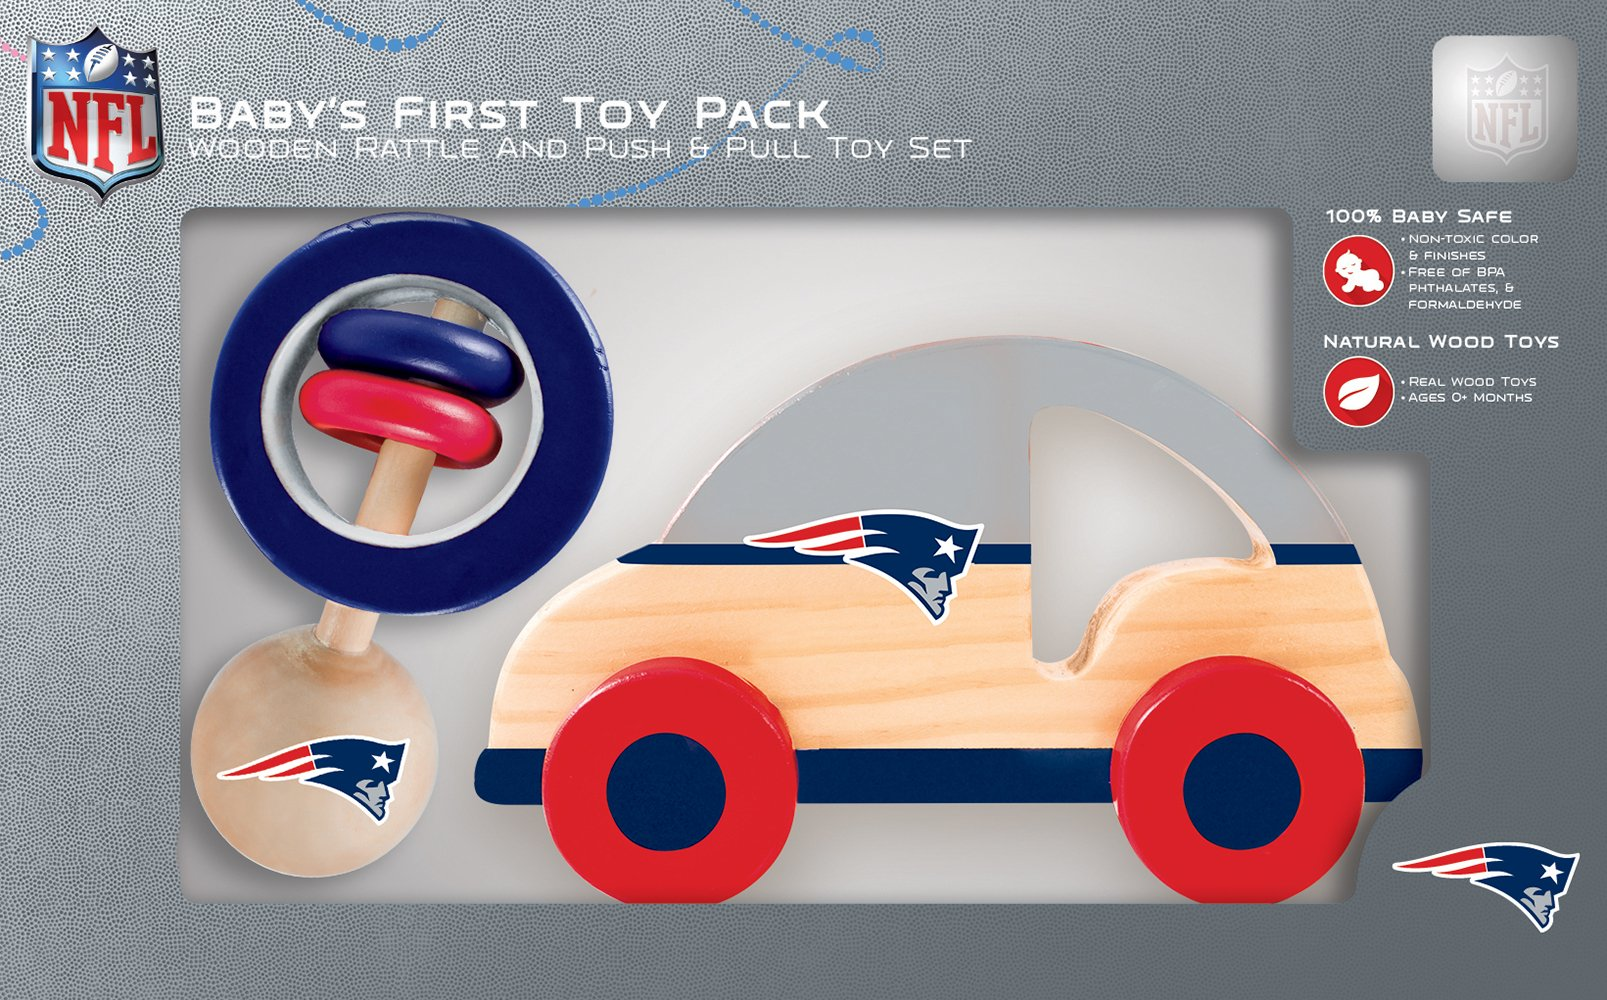 MasterPieces NFL New England Patriots Natural Wood, Non-Toxic, BPA, Phthalates, & Formaldehyde Free, Push - Pull Toy & Baby Rattle Combo Set, 2 Pieces